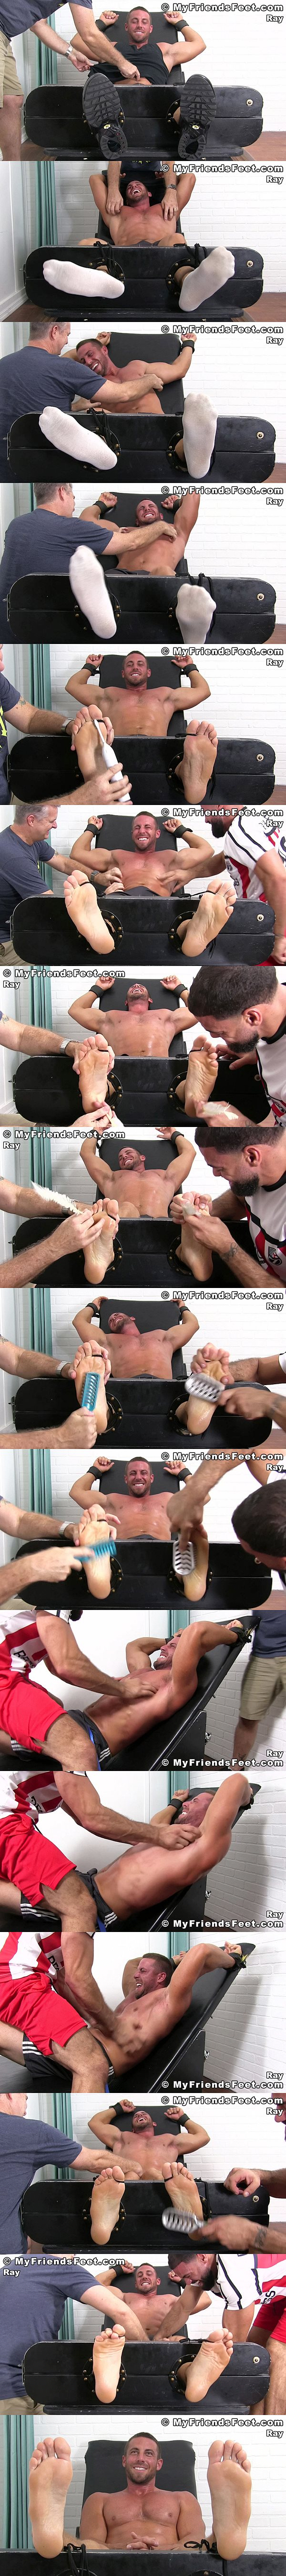 Myfriendsfeet - Hot New Guy Ray Tickled 02